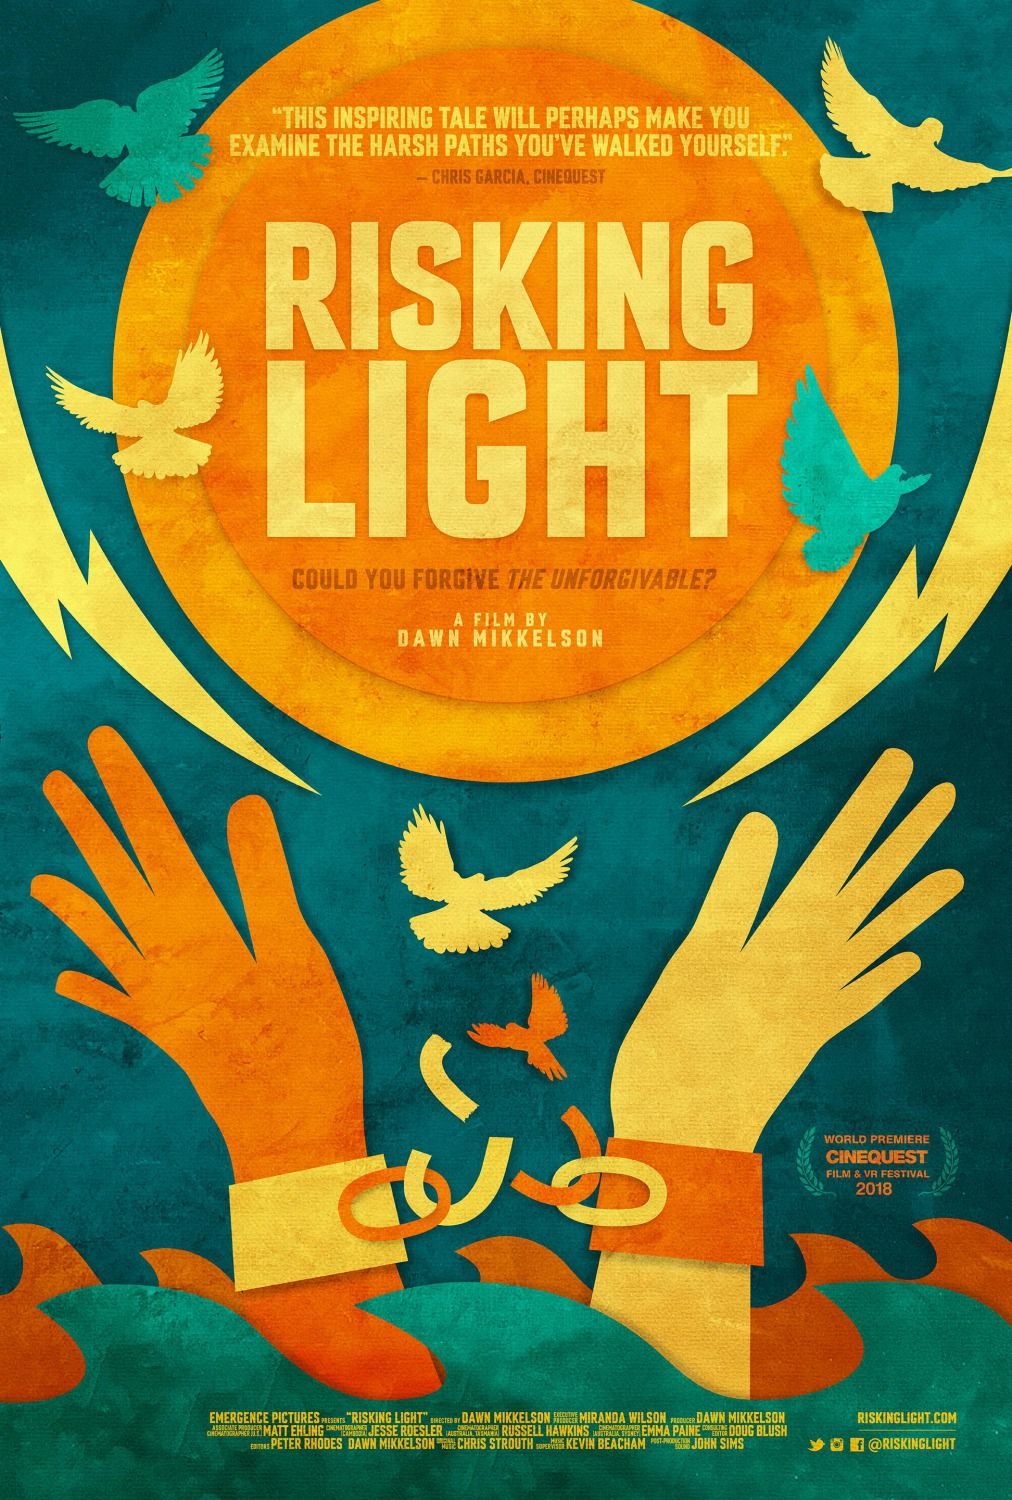 Risking Light by Dawn Mikkelson - Could you forgive the unforgivable - film poster 2018